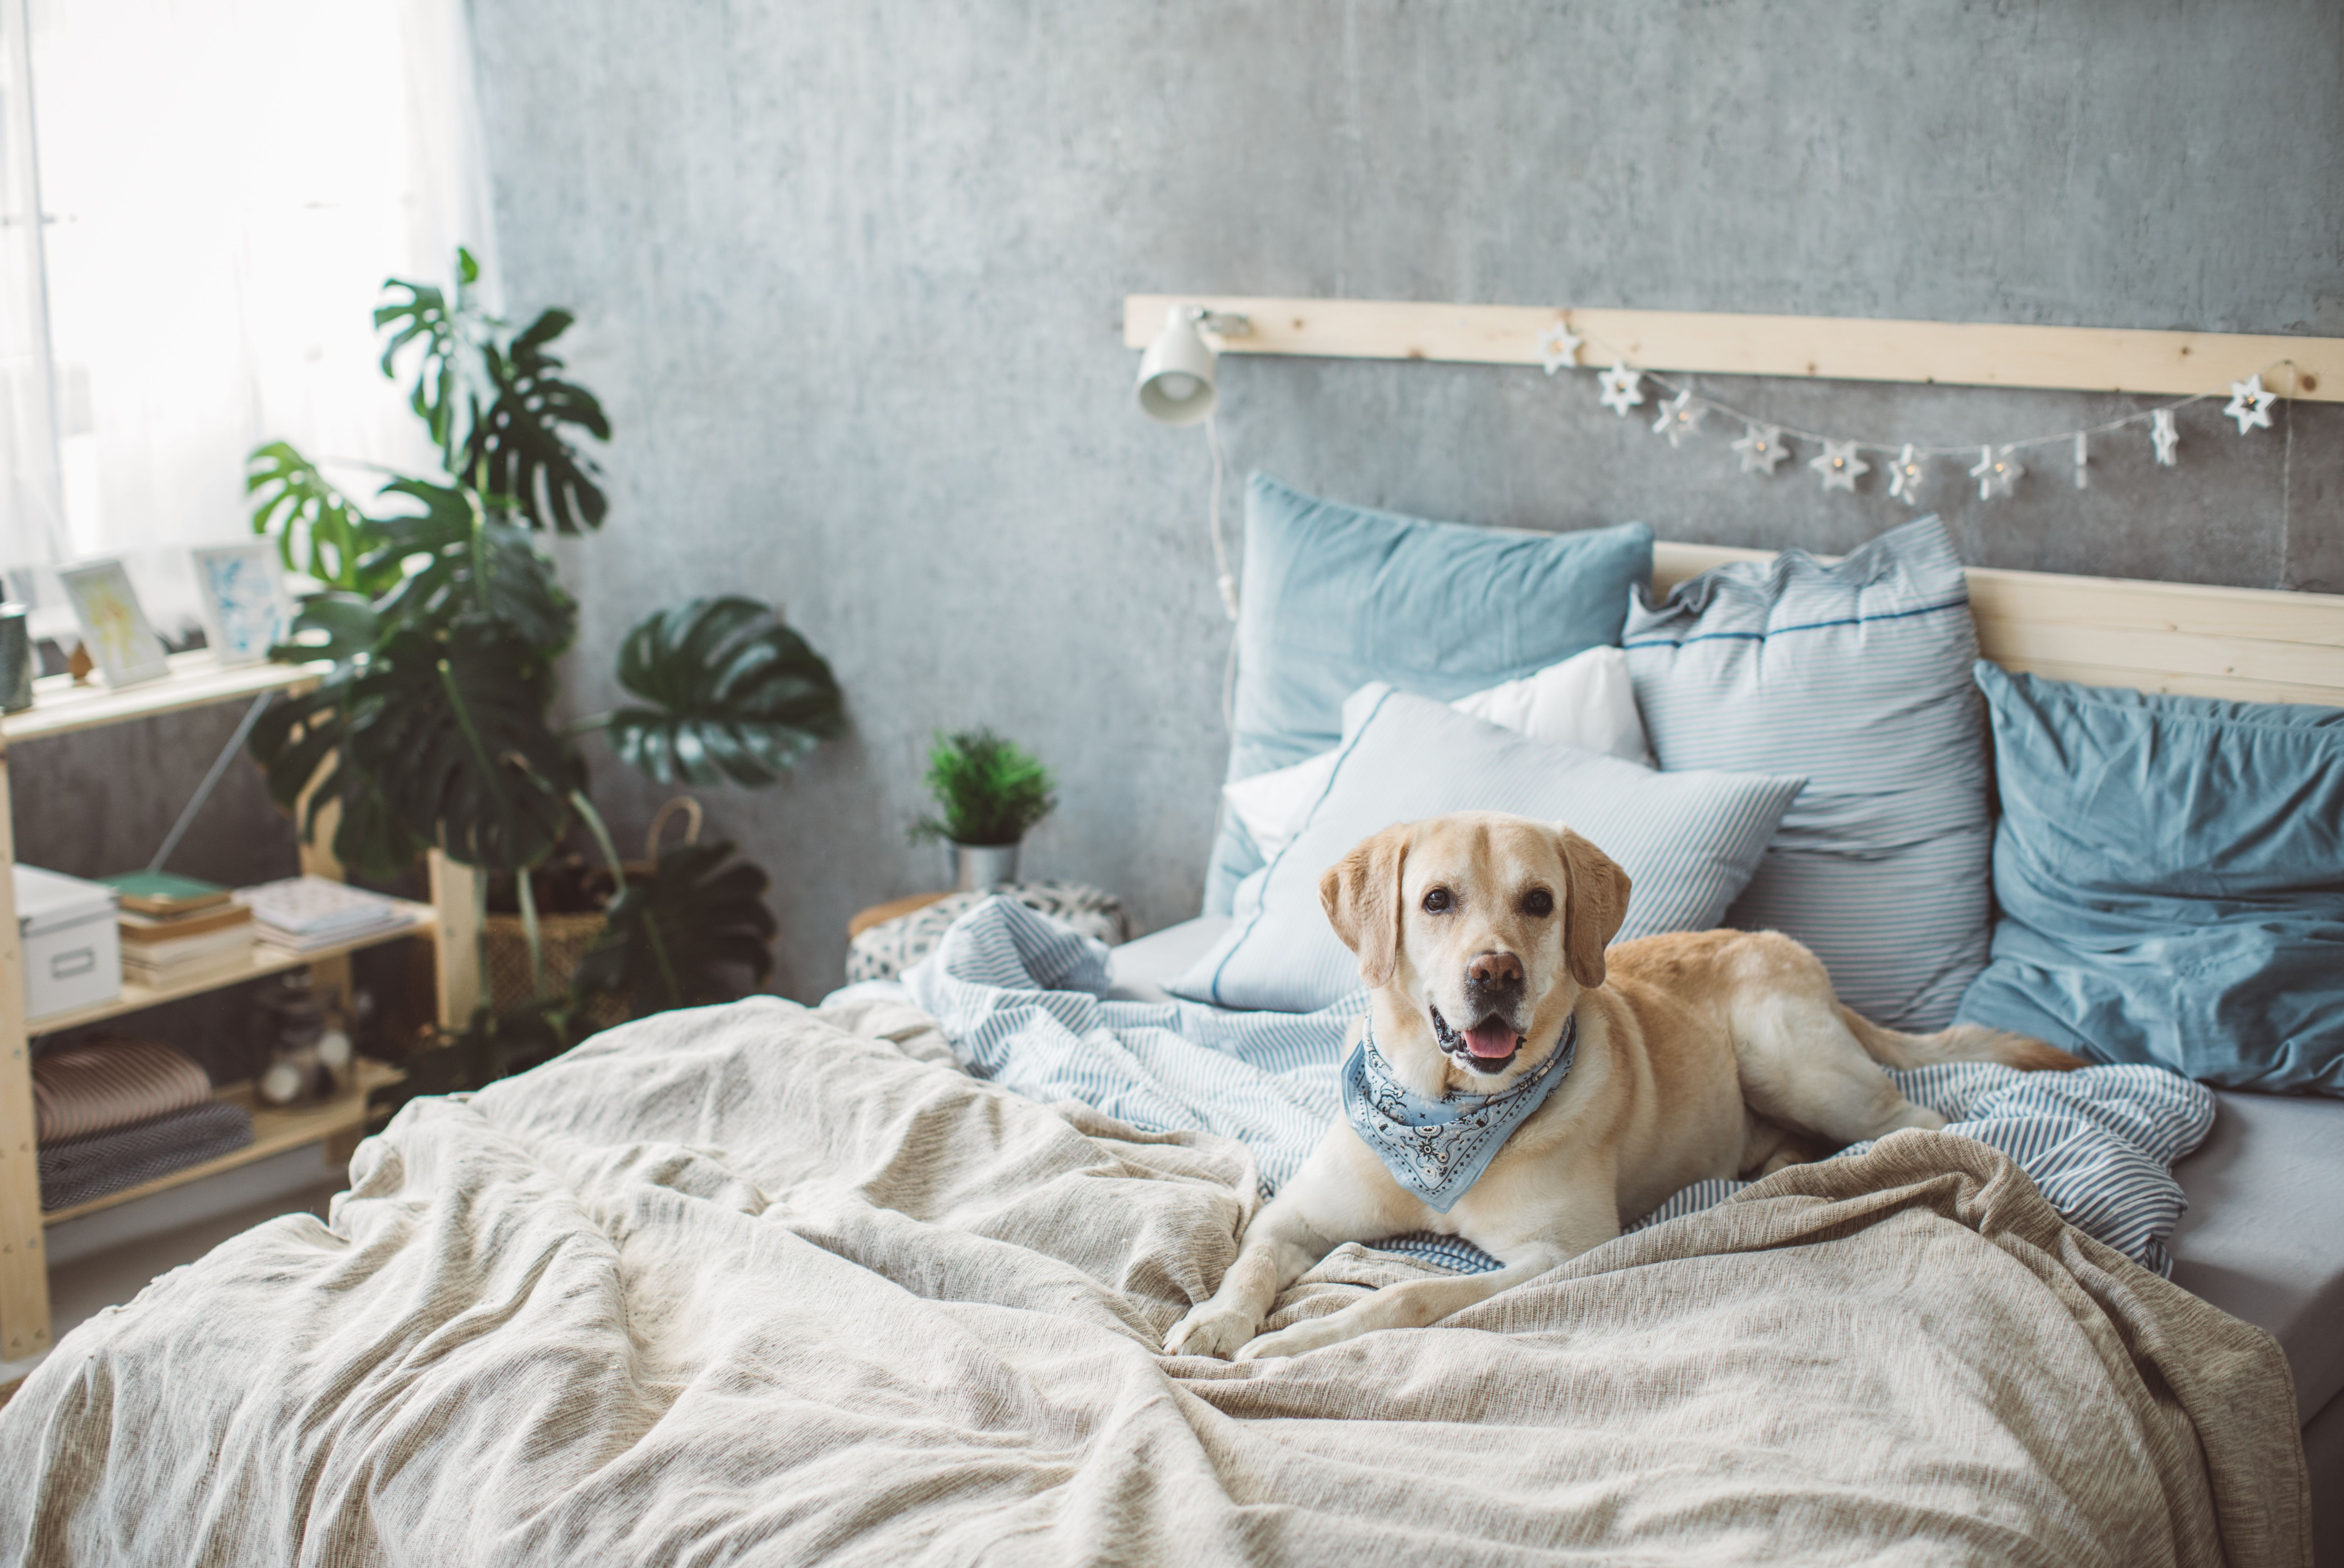 How to Stop a Dog From Peeing & Pooping on the Bed Dog